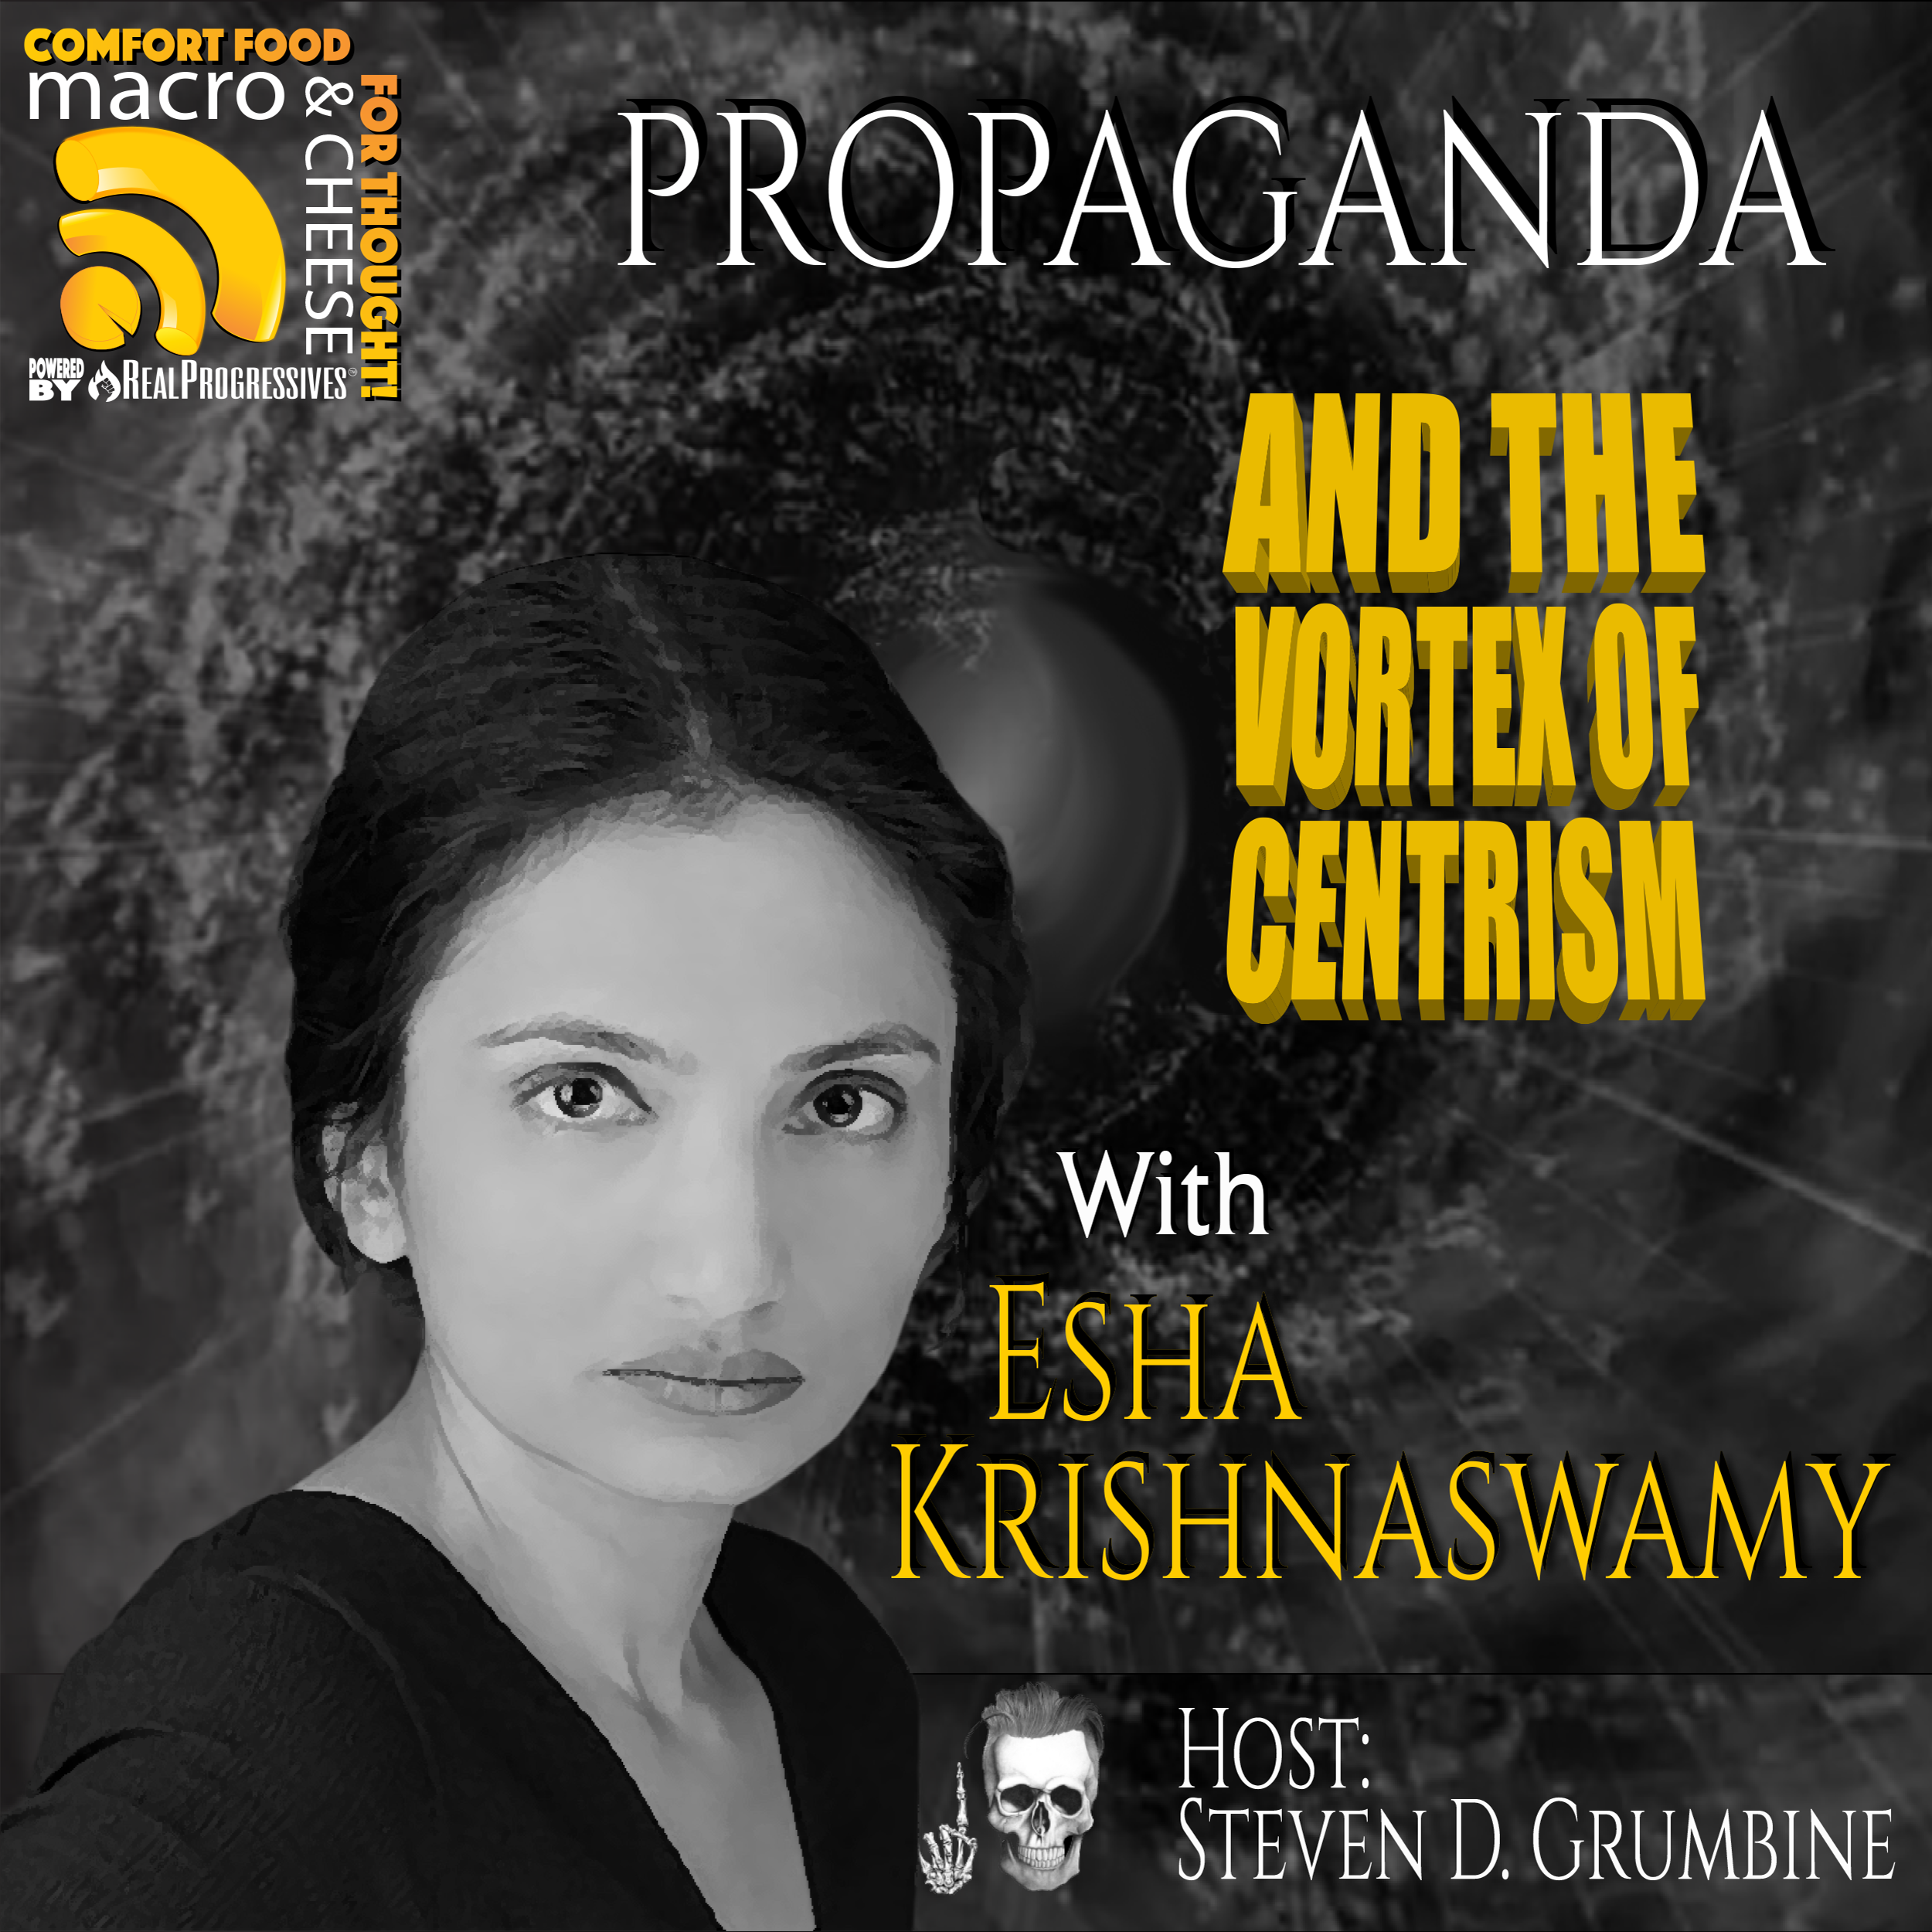 Propaganda and the Vortex of Centrism with Esha Krishnaswamy